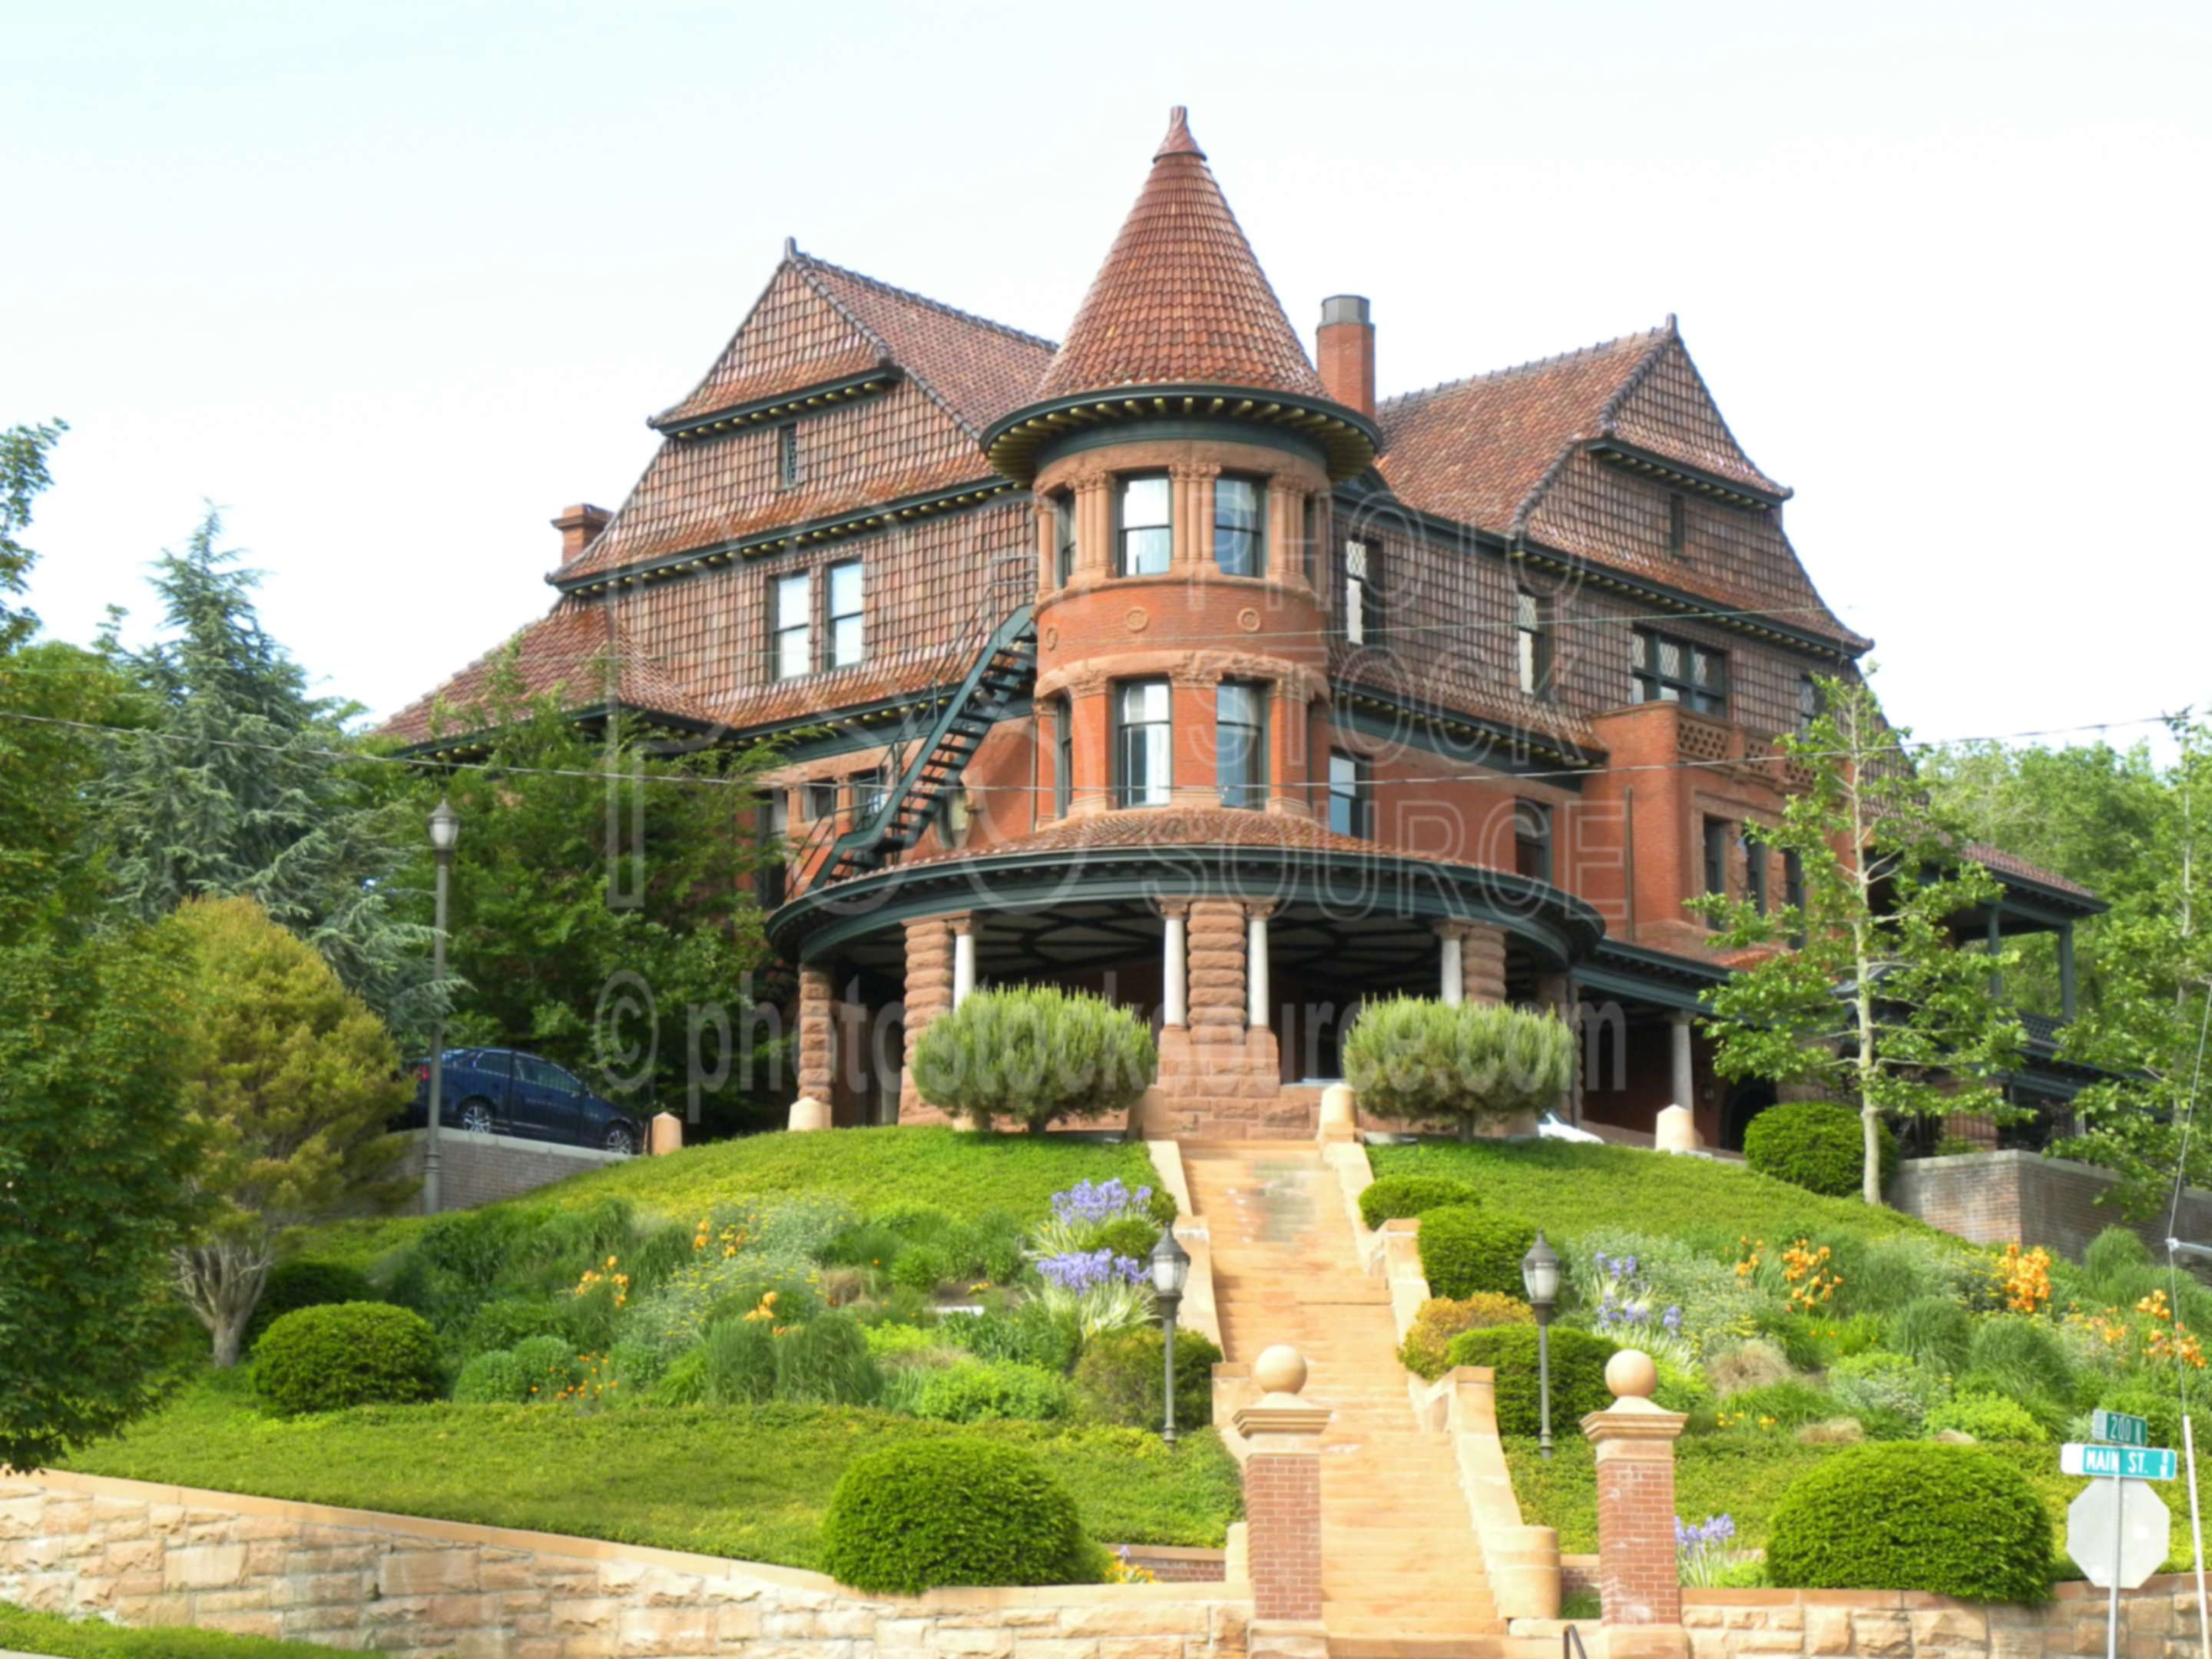 Photo of mccune mansion by photo stock source building Building a house in utah